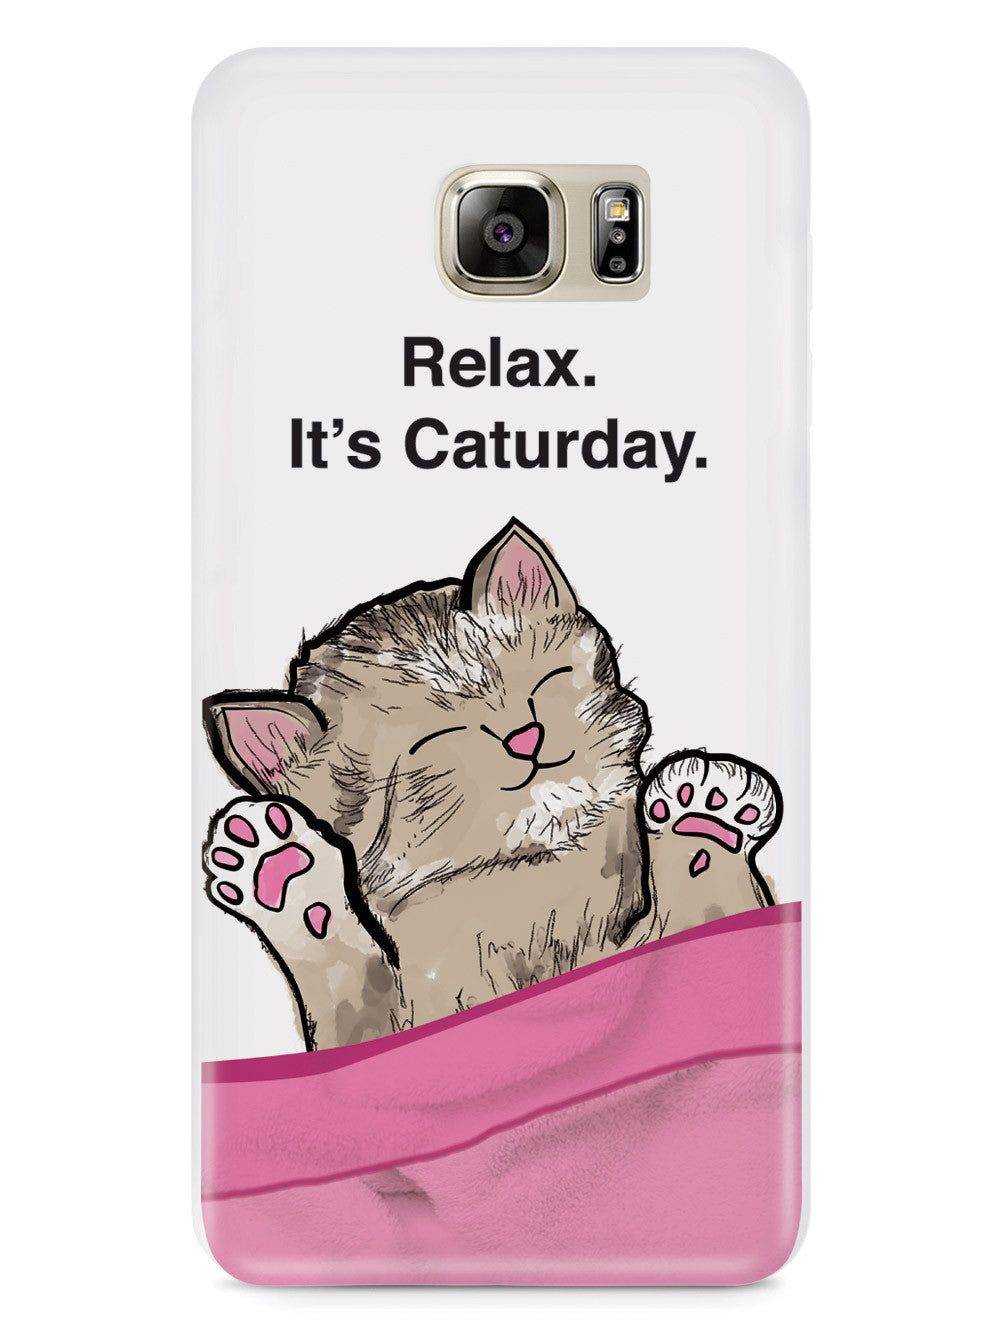 Relax! It's Caturday Case